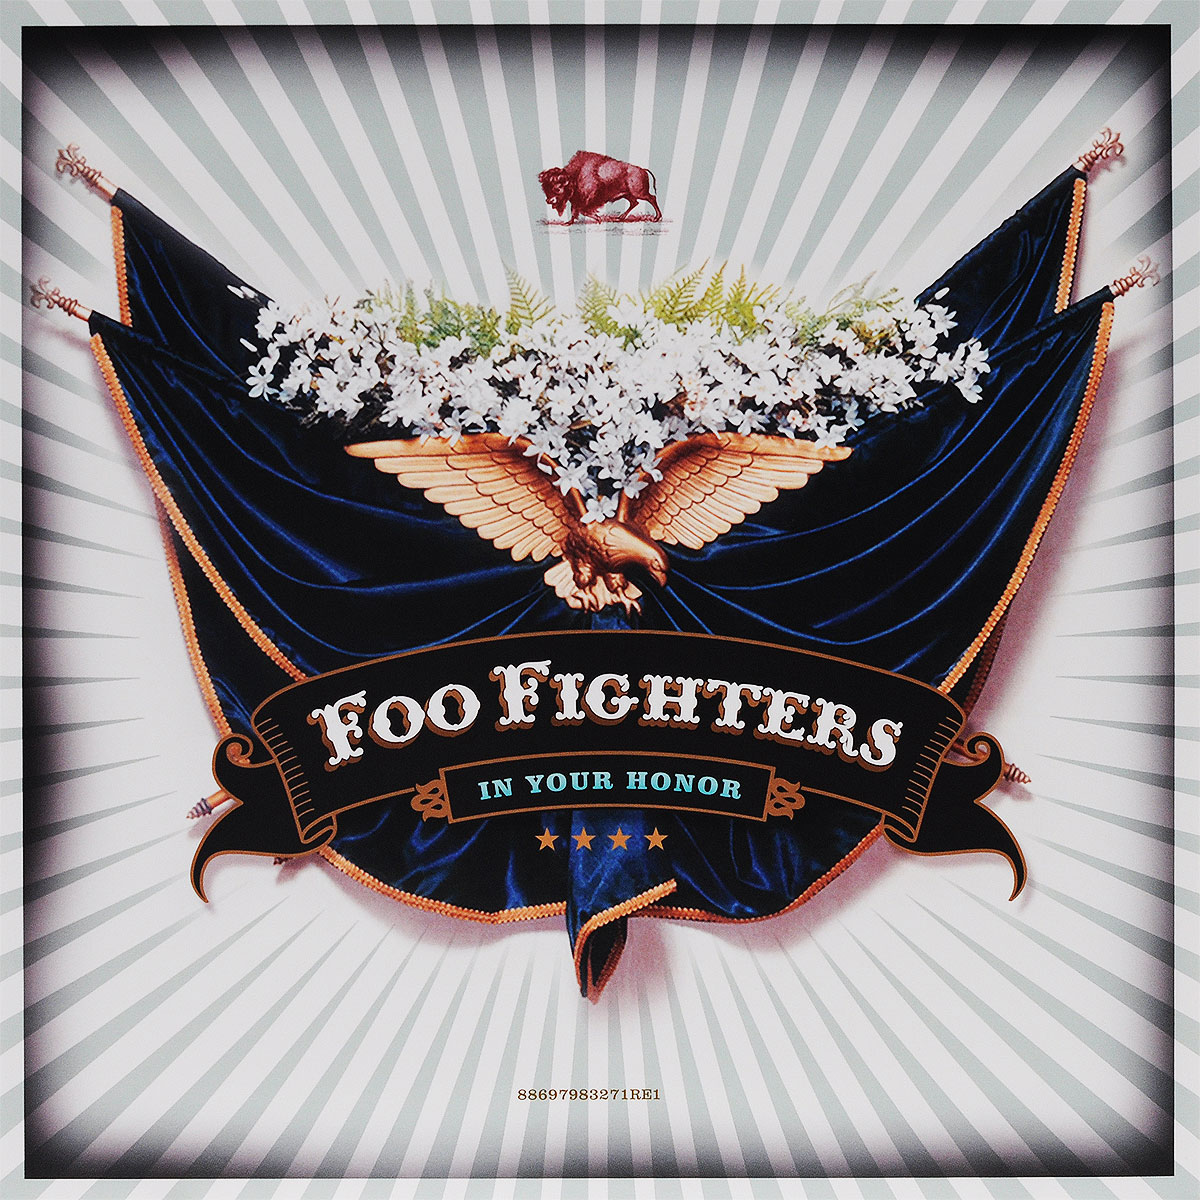 Foo Fighters. In Your Honor (2 LP)